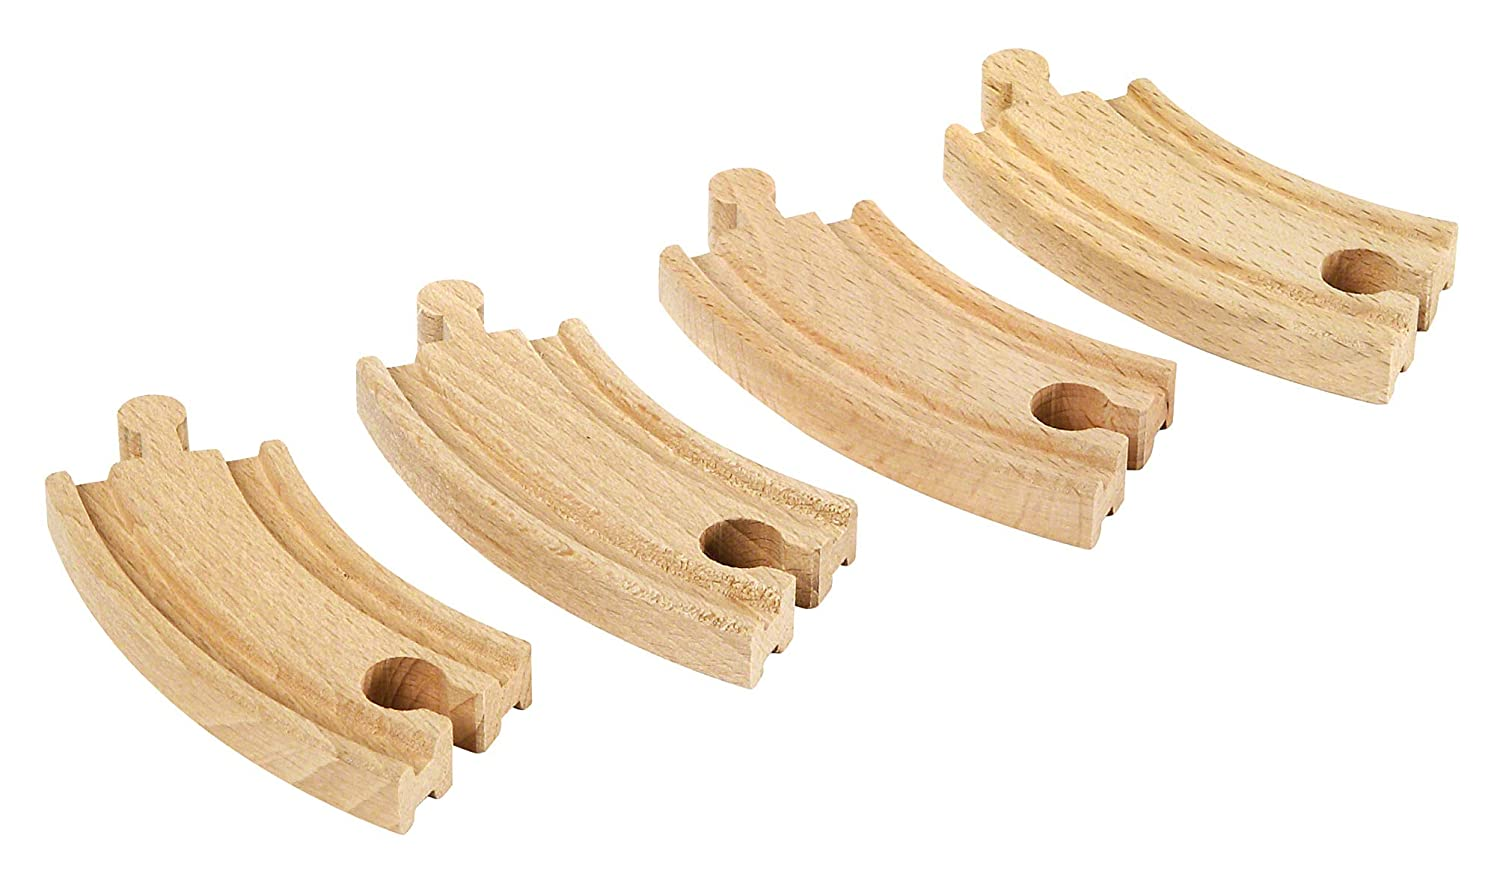 B00000IU3D BRIO World 33337 - Short Curved Tracks - 4 Piece Wooden Track Tracks for Kids Ages 3 and Up 716cdm-AO2L